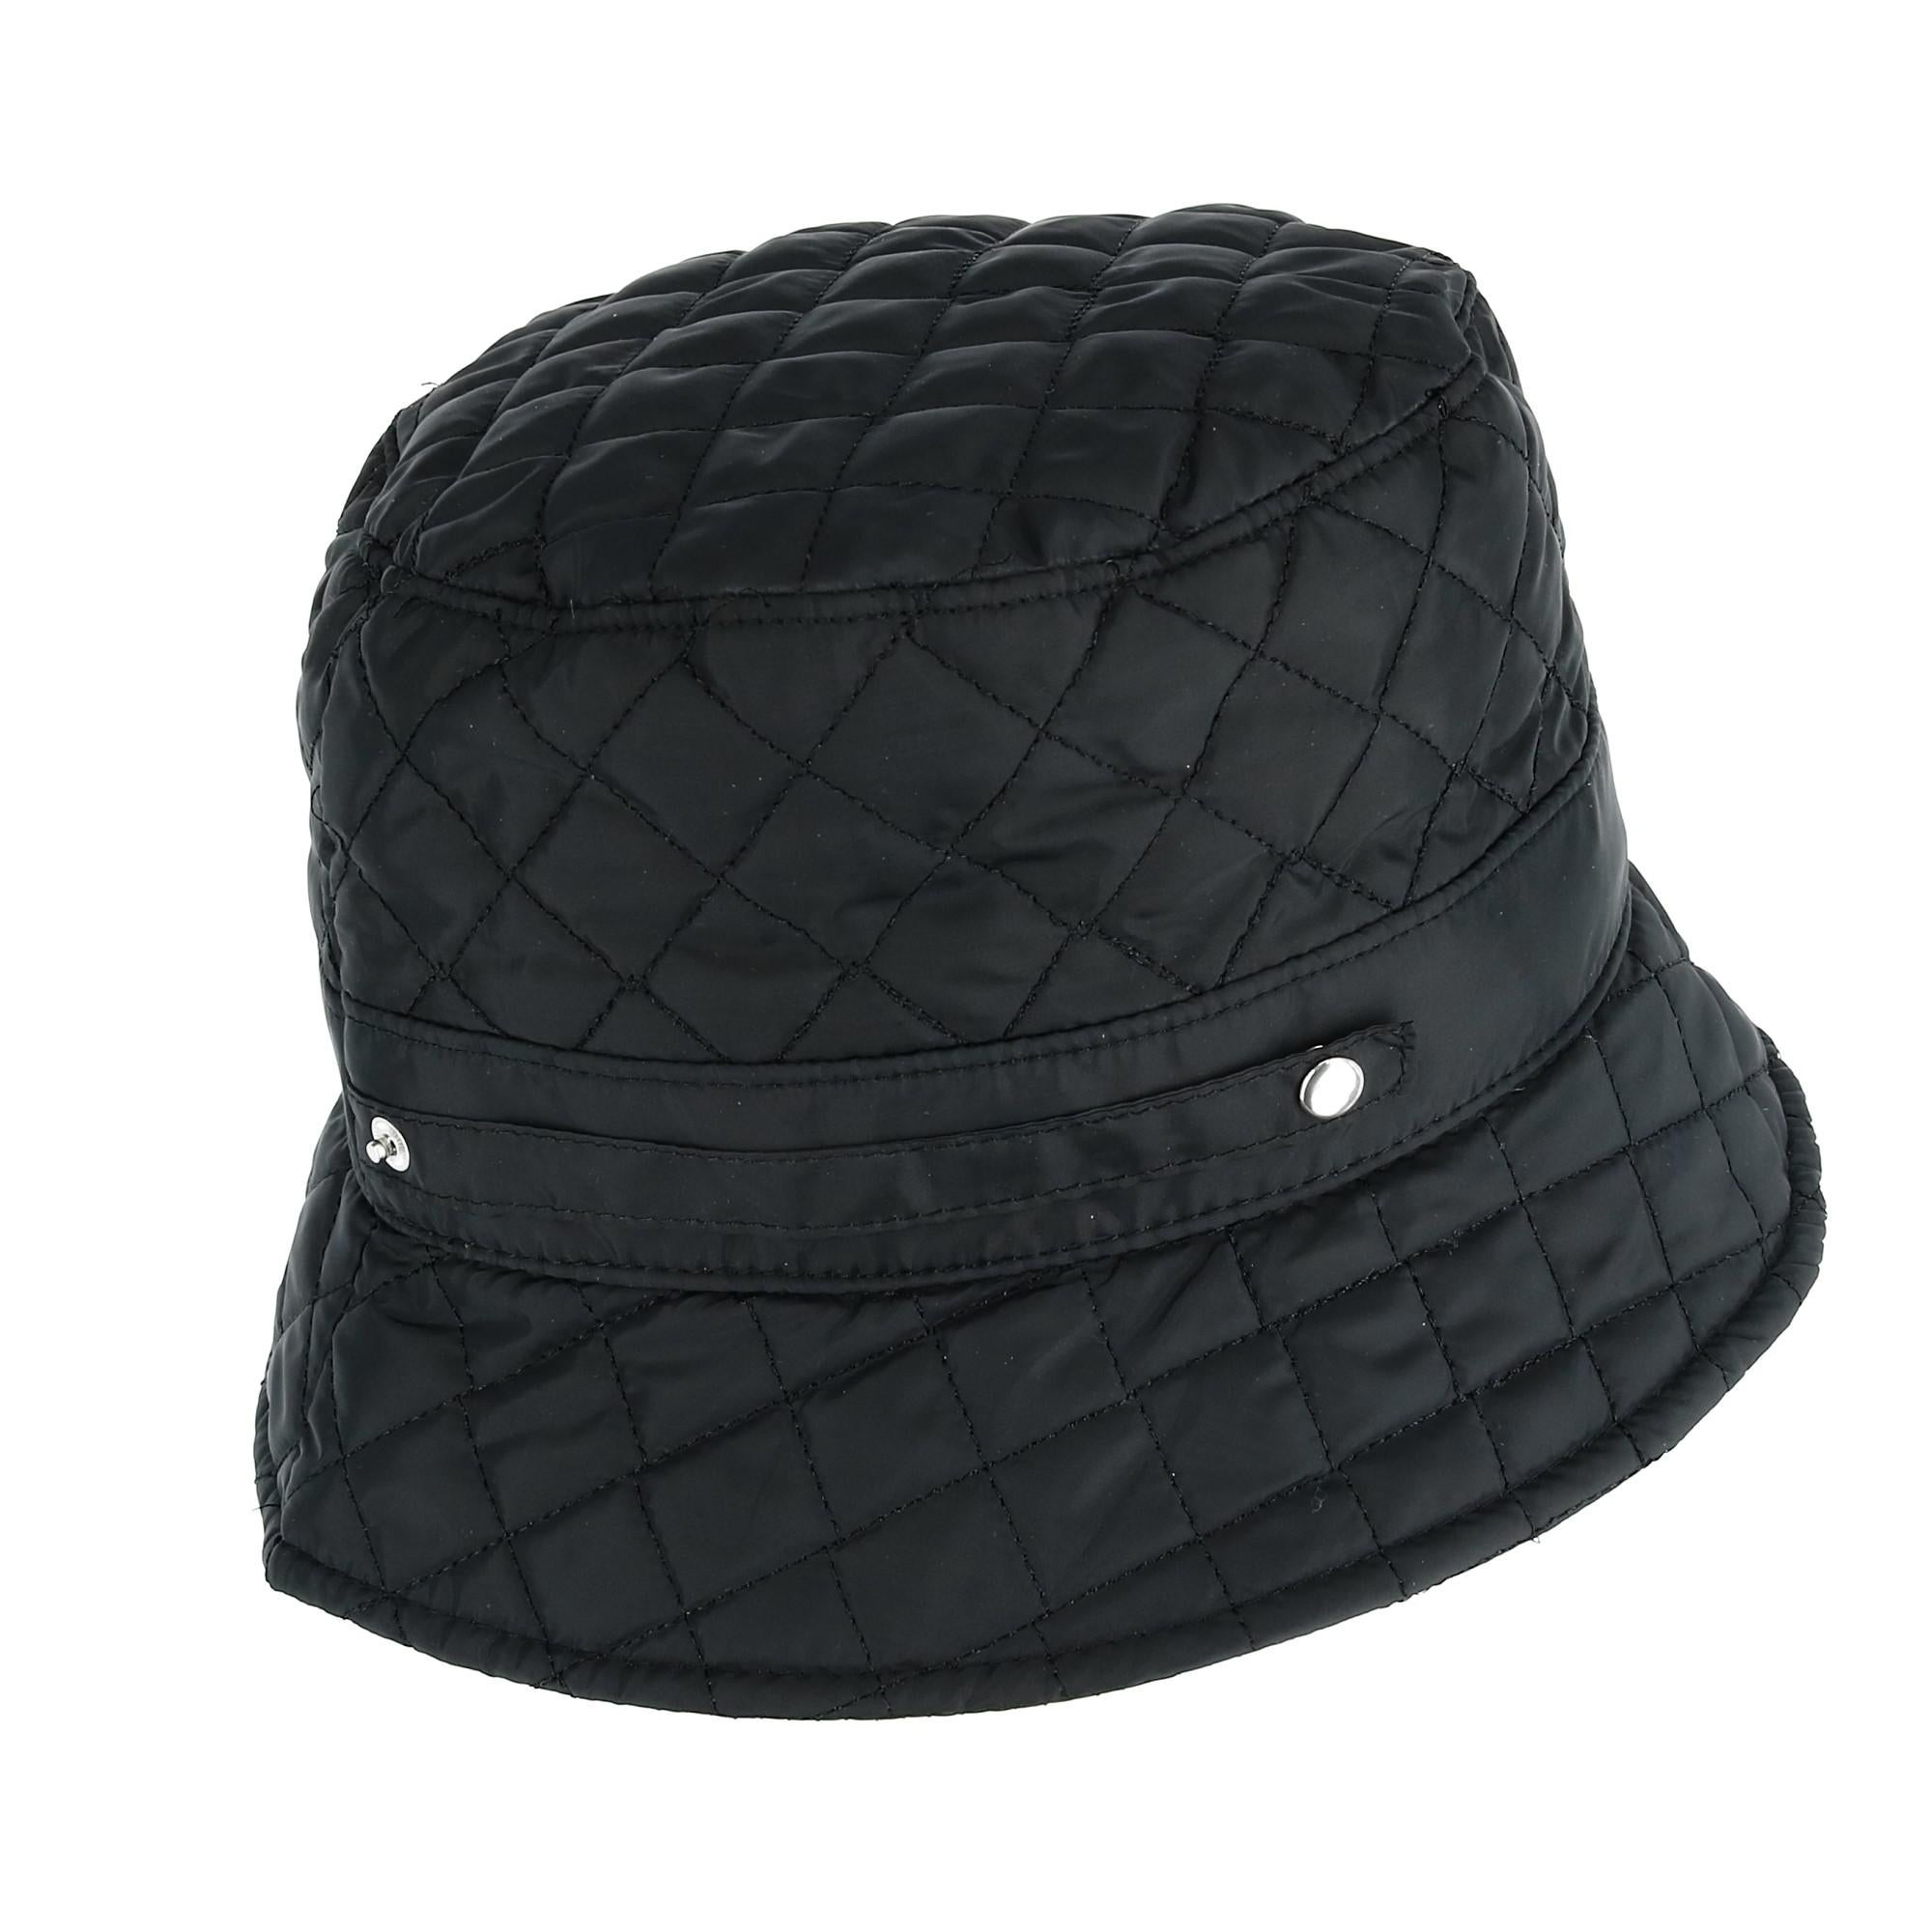 1d55b546715 Shop CTM® Women s Packable Quilted Rain Bucket Hat - Free Shipping On  Orders Over  45 - Overstock - 23600841